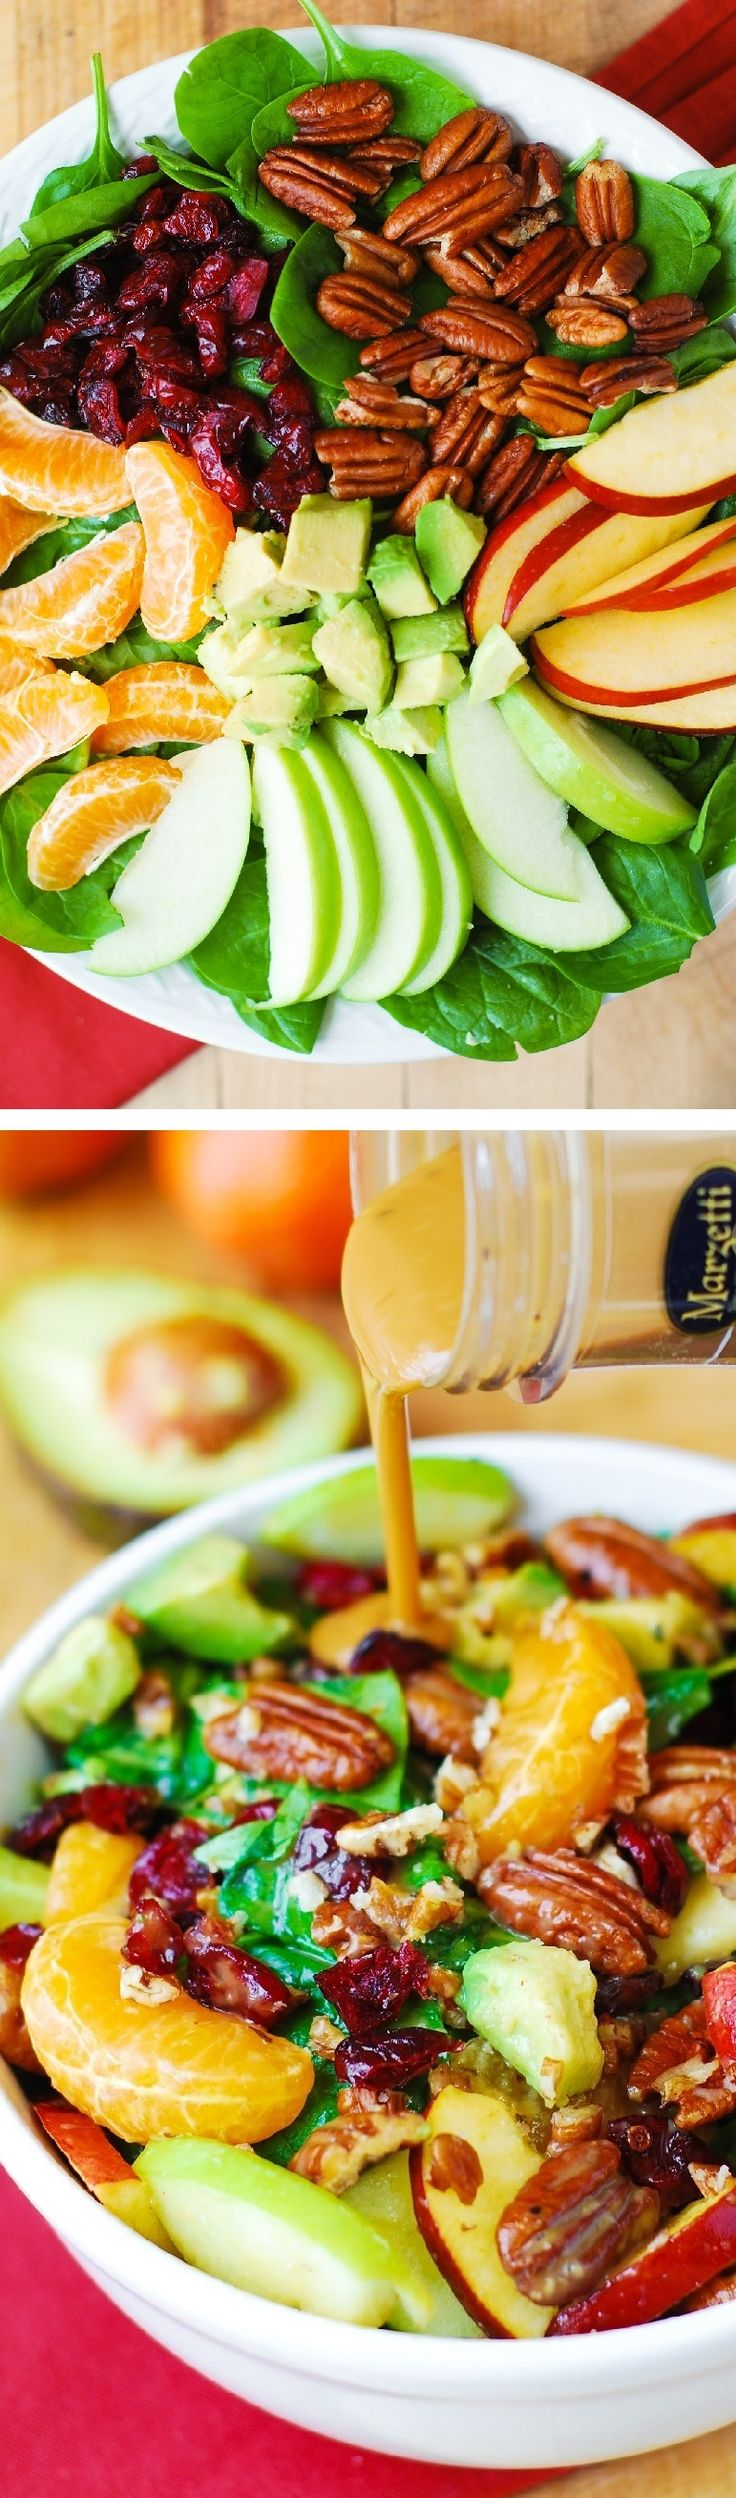 Apple Cranberry Spinach Salad with Pecans, Avocados - healthy, vegetarian, gluten free recipe.